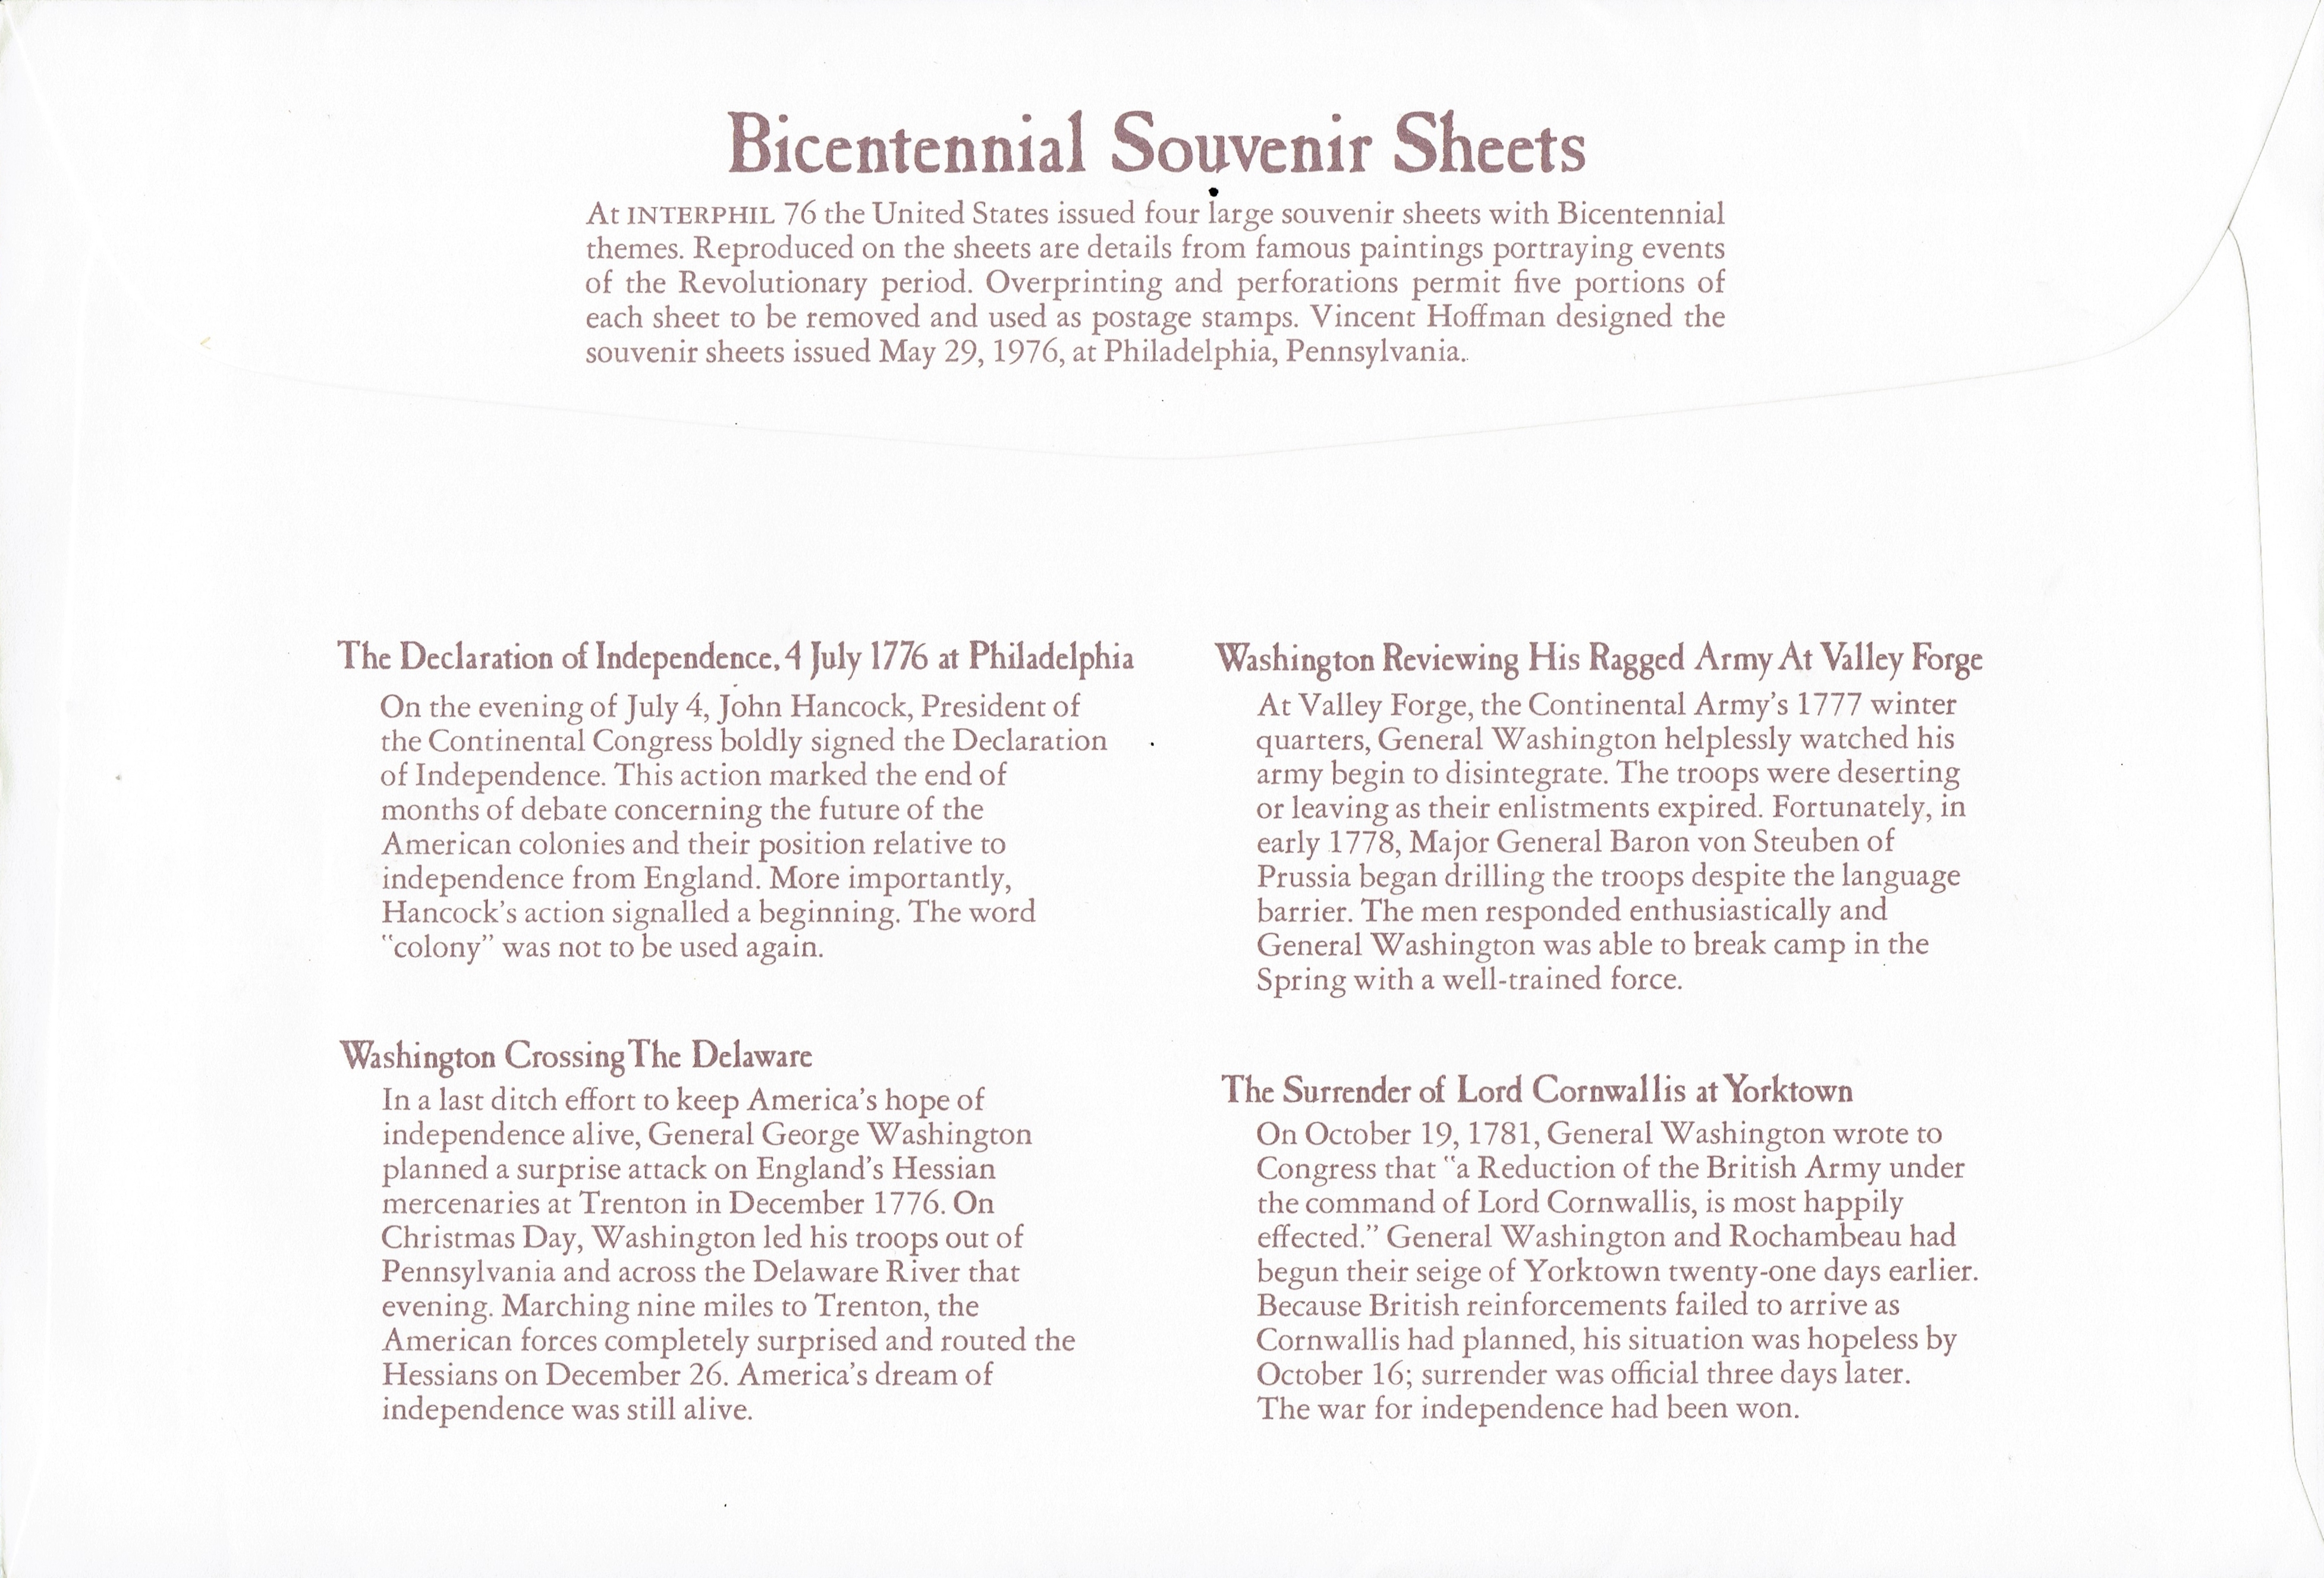 The Bicentennial souvenir sheets (Scott #1685-1689) were sold by the United States Postal Service in envelopes containing the complete set of four sheets.